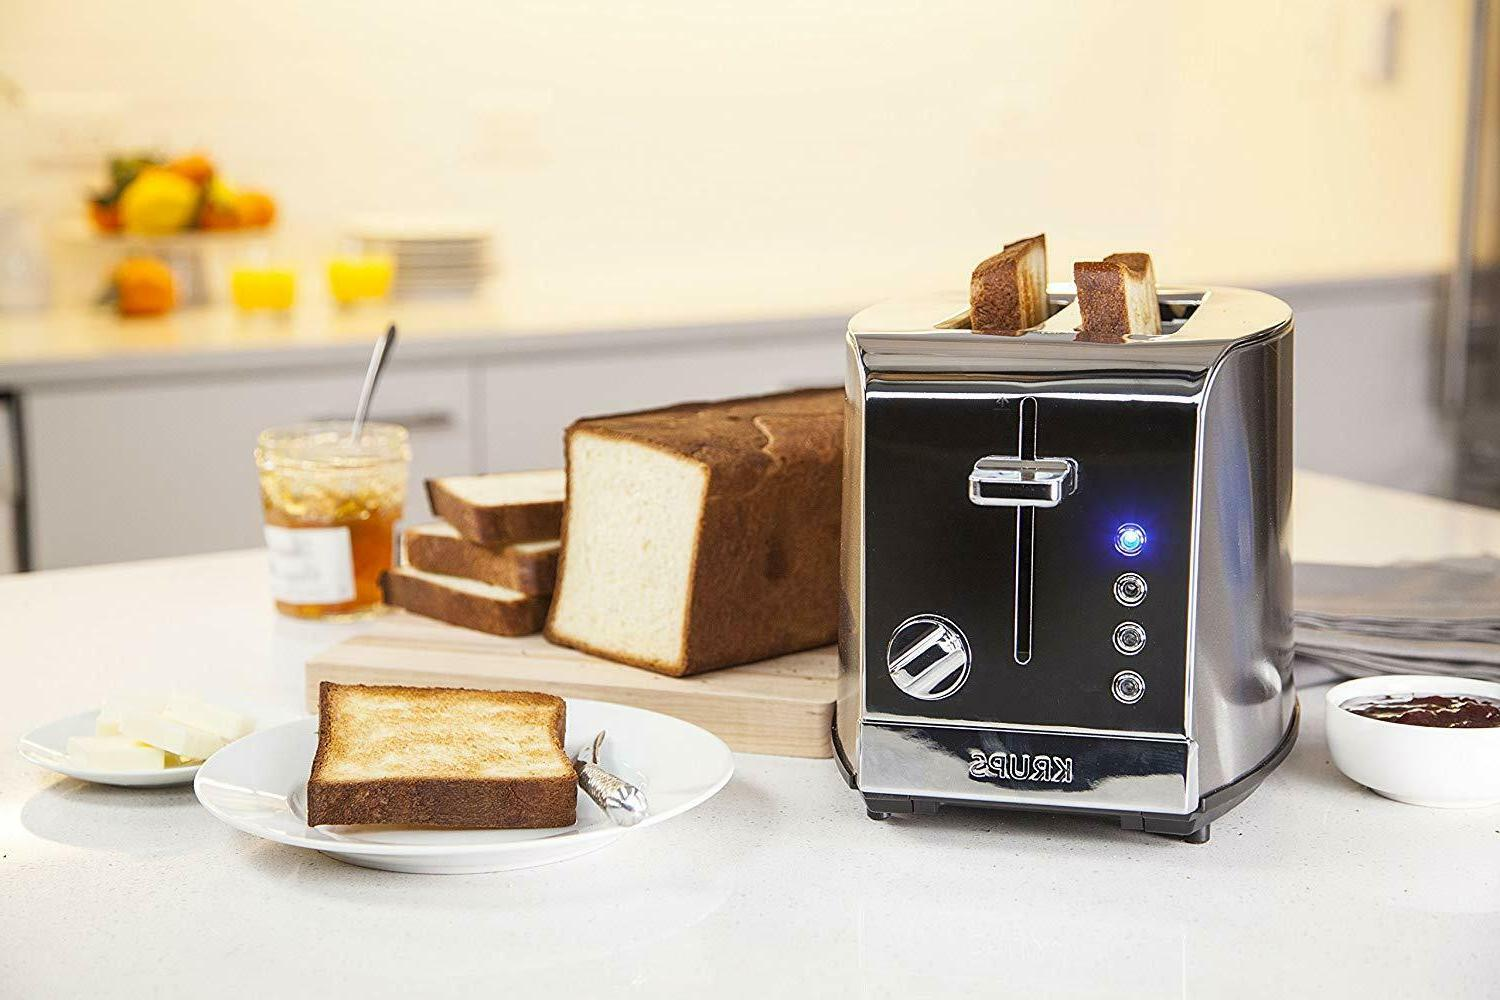 KRUPS KH732D50 2-Slice Stainless Steel Toaster, 5 Functions with Cancel